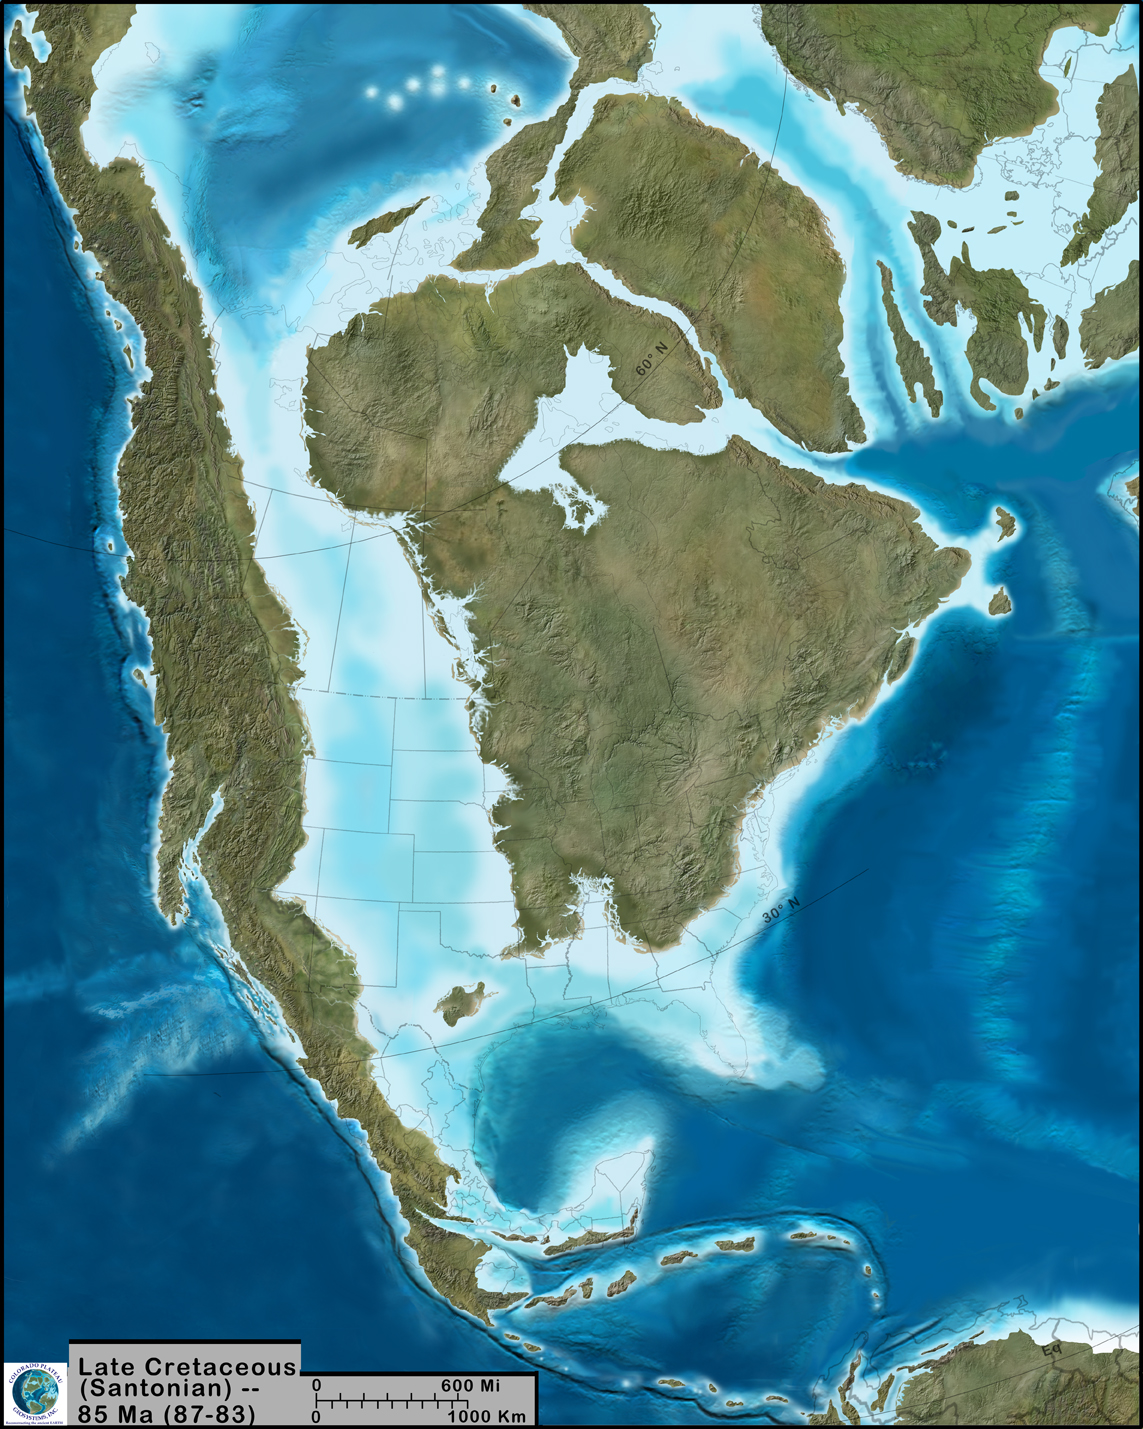 """A paleogeographic reconstruction of North America during the Late Cretaceous, 85Ma wriggly_fish: """"The author has a beautiful map library found here: http://cpgeosystems.com/namkeyframe.html """""""